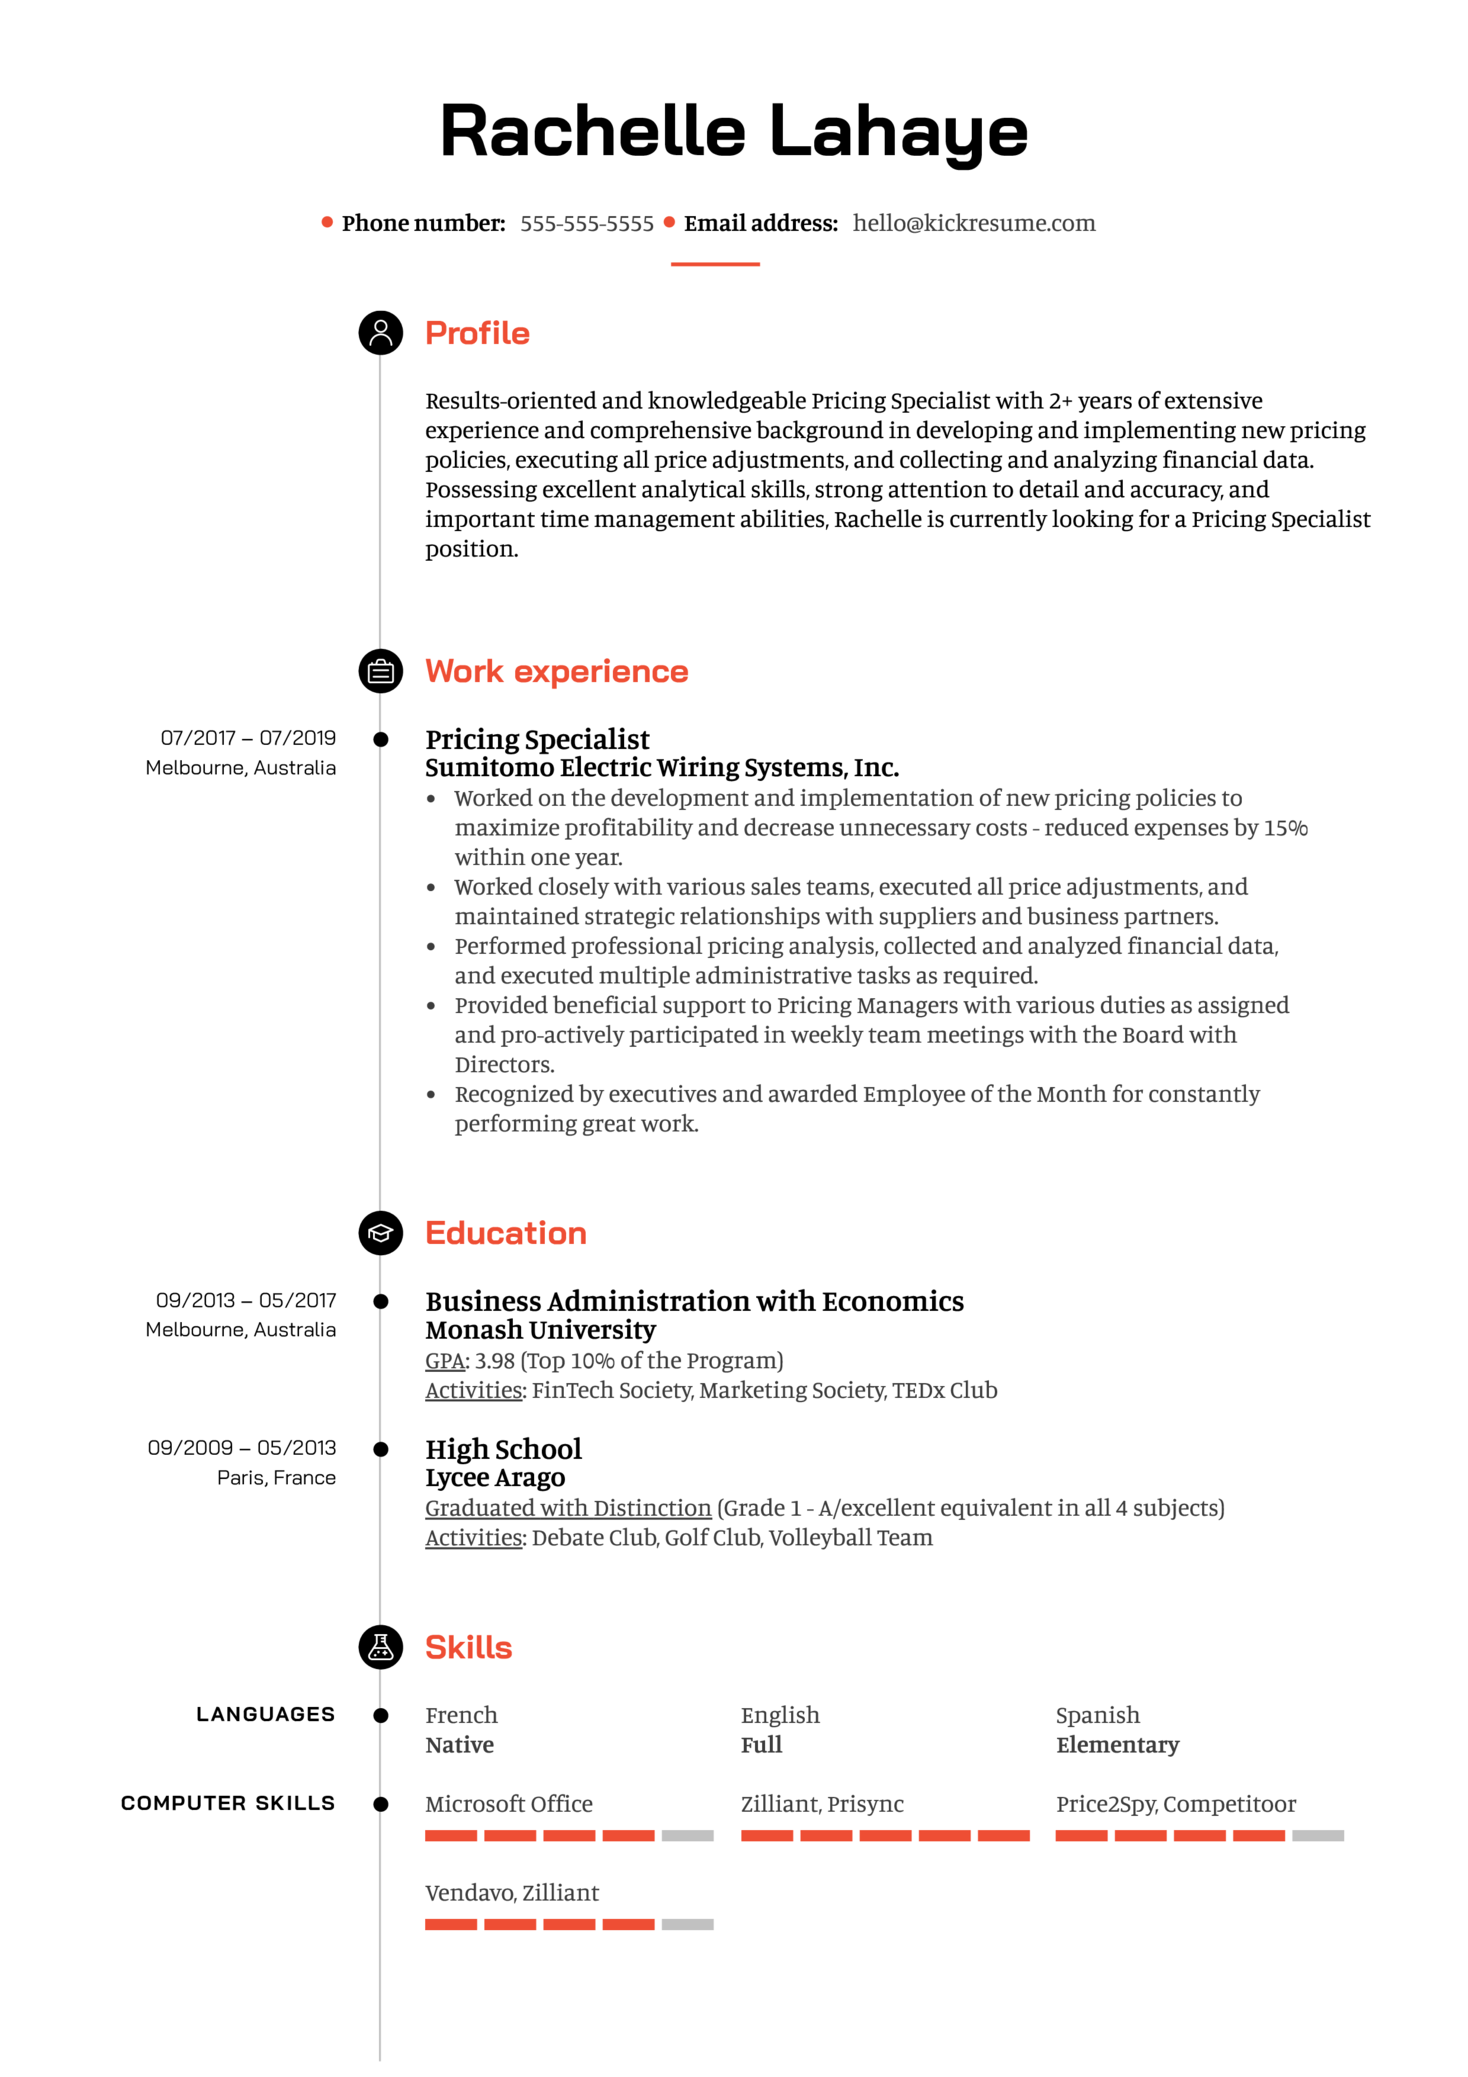 Pricing Specialist Resume Example (parte 1)